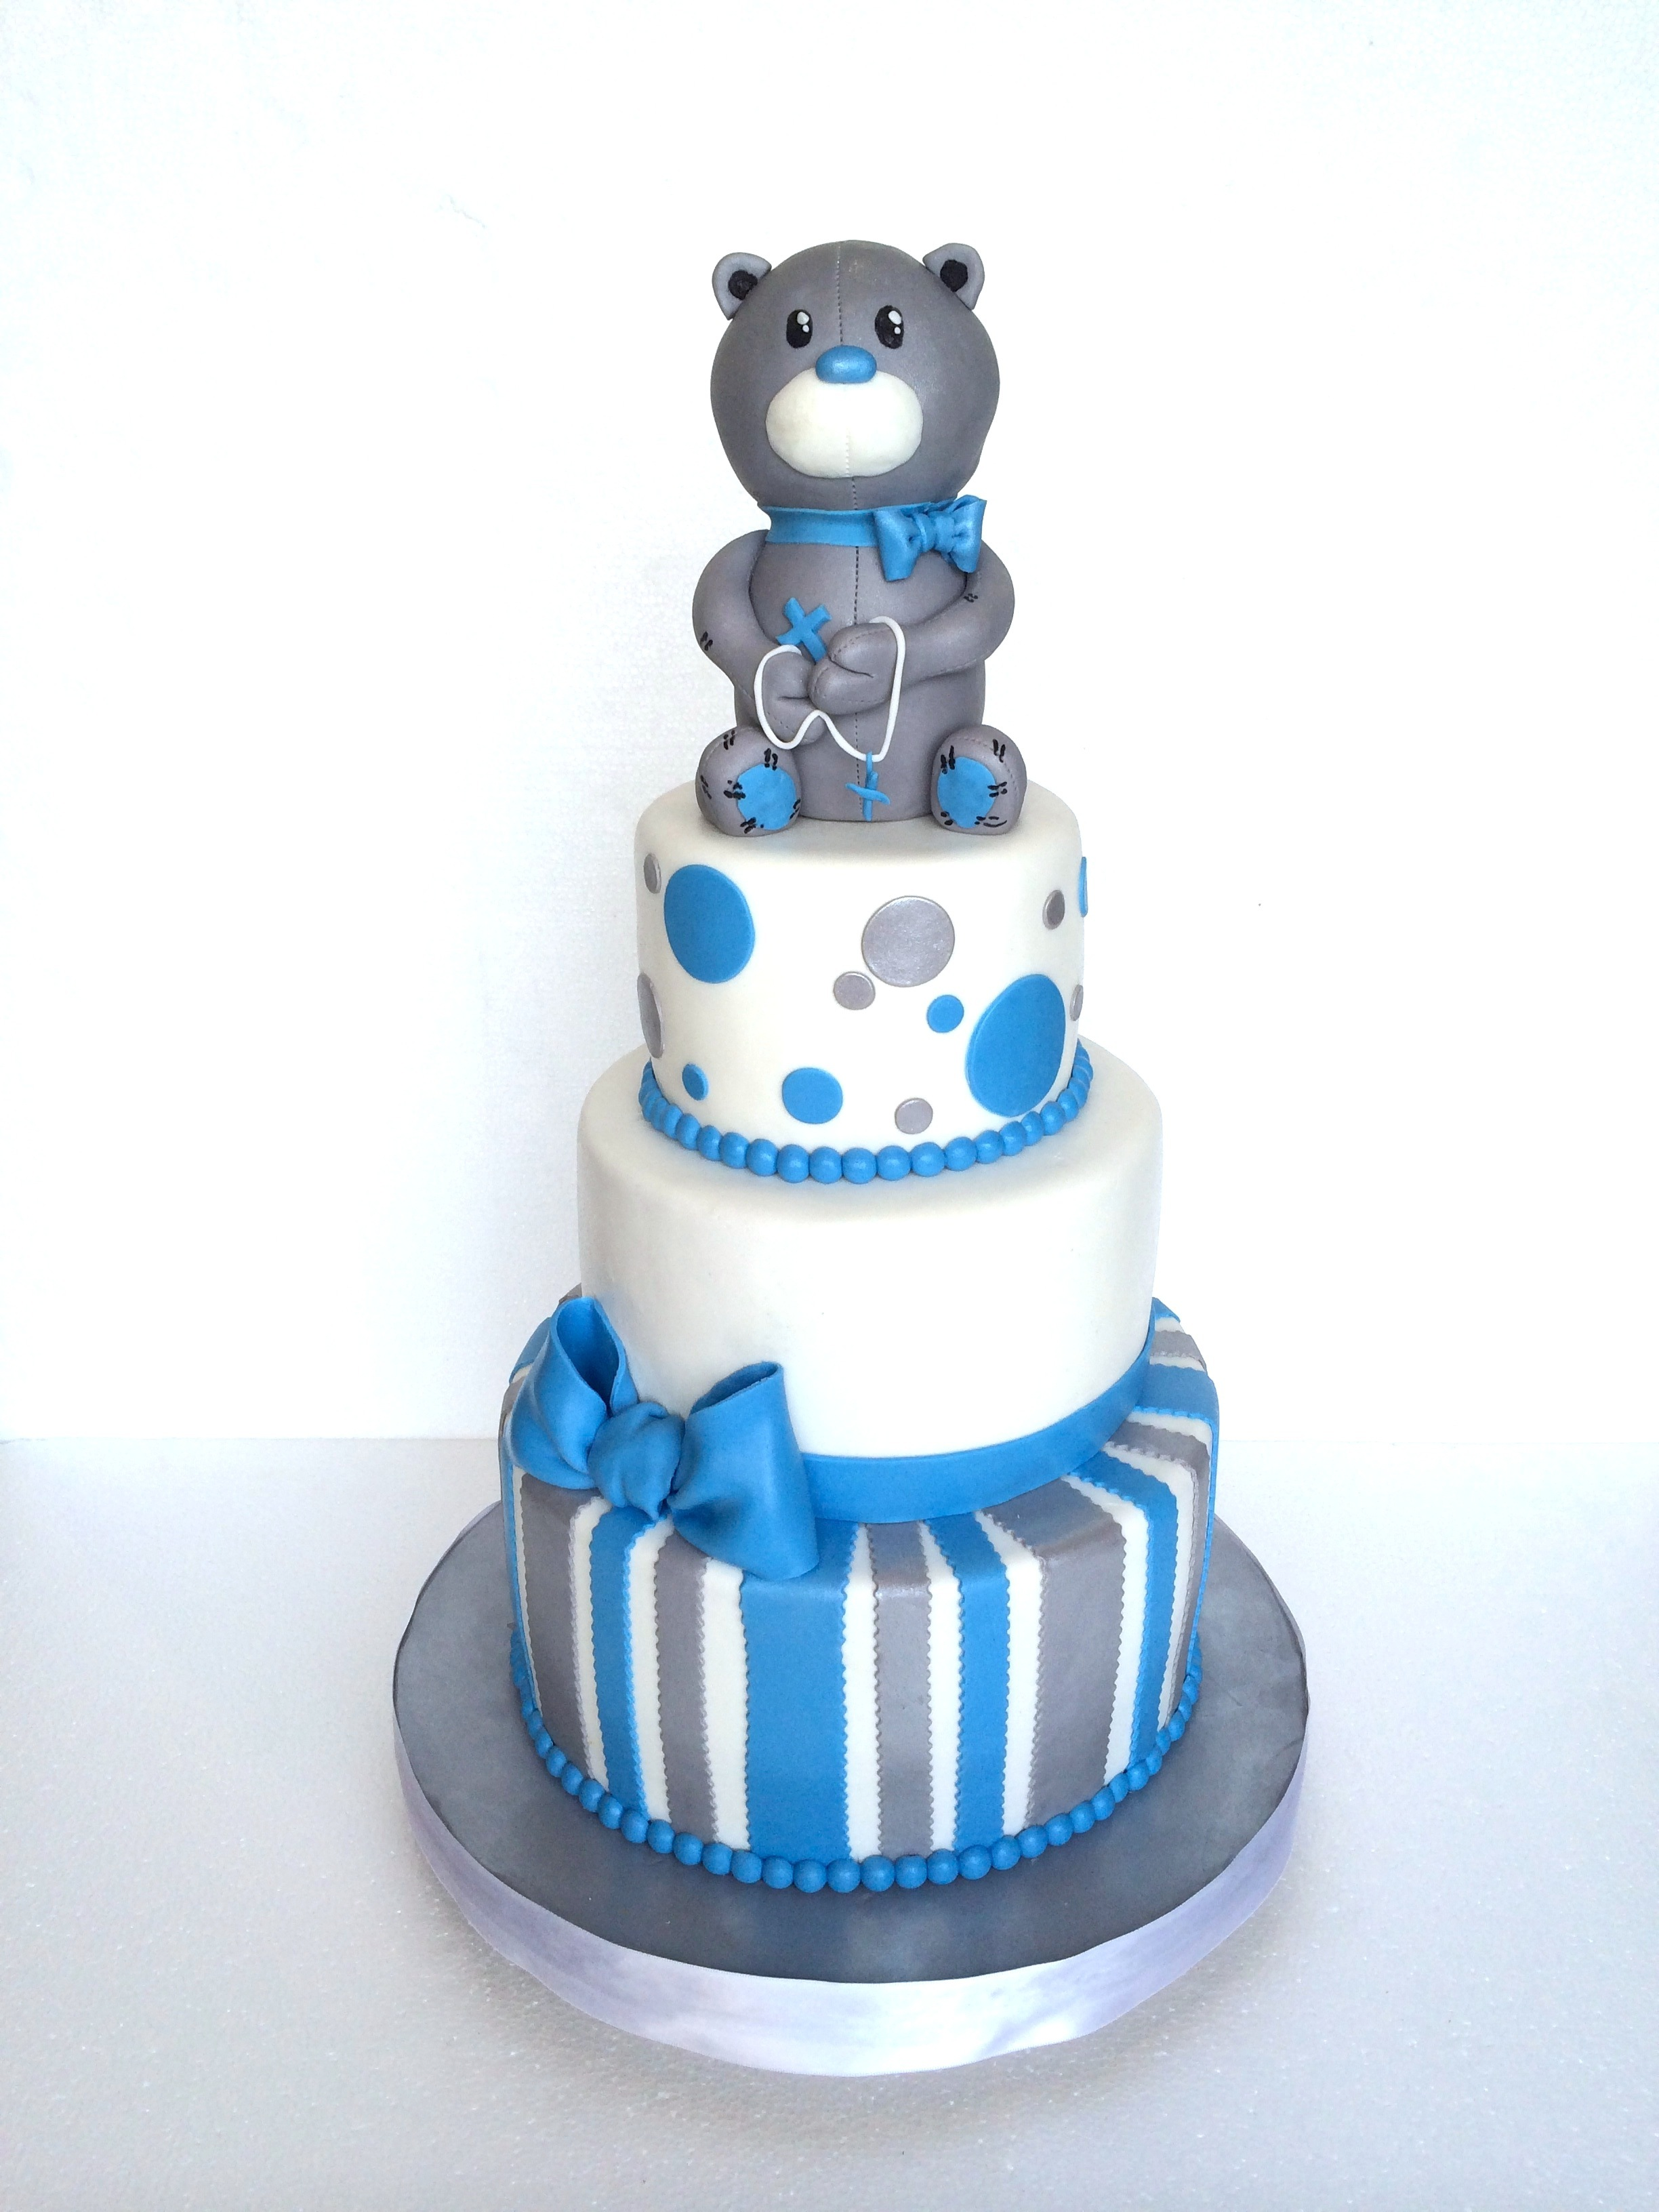 Blue & White Teddy bear Cake